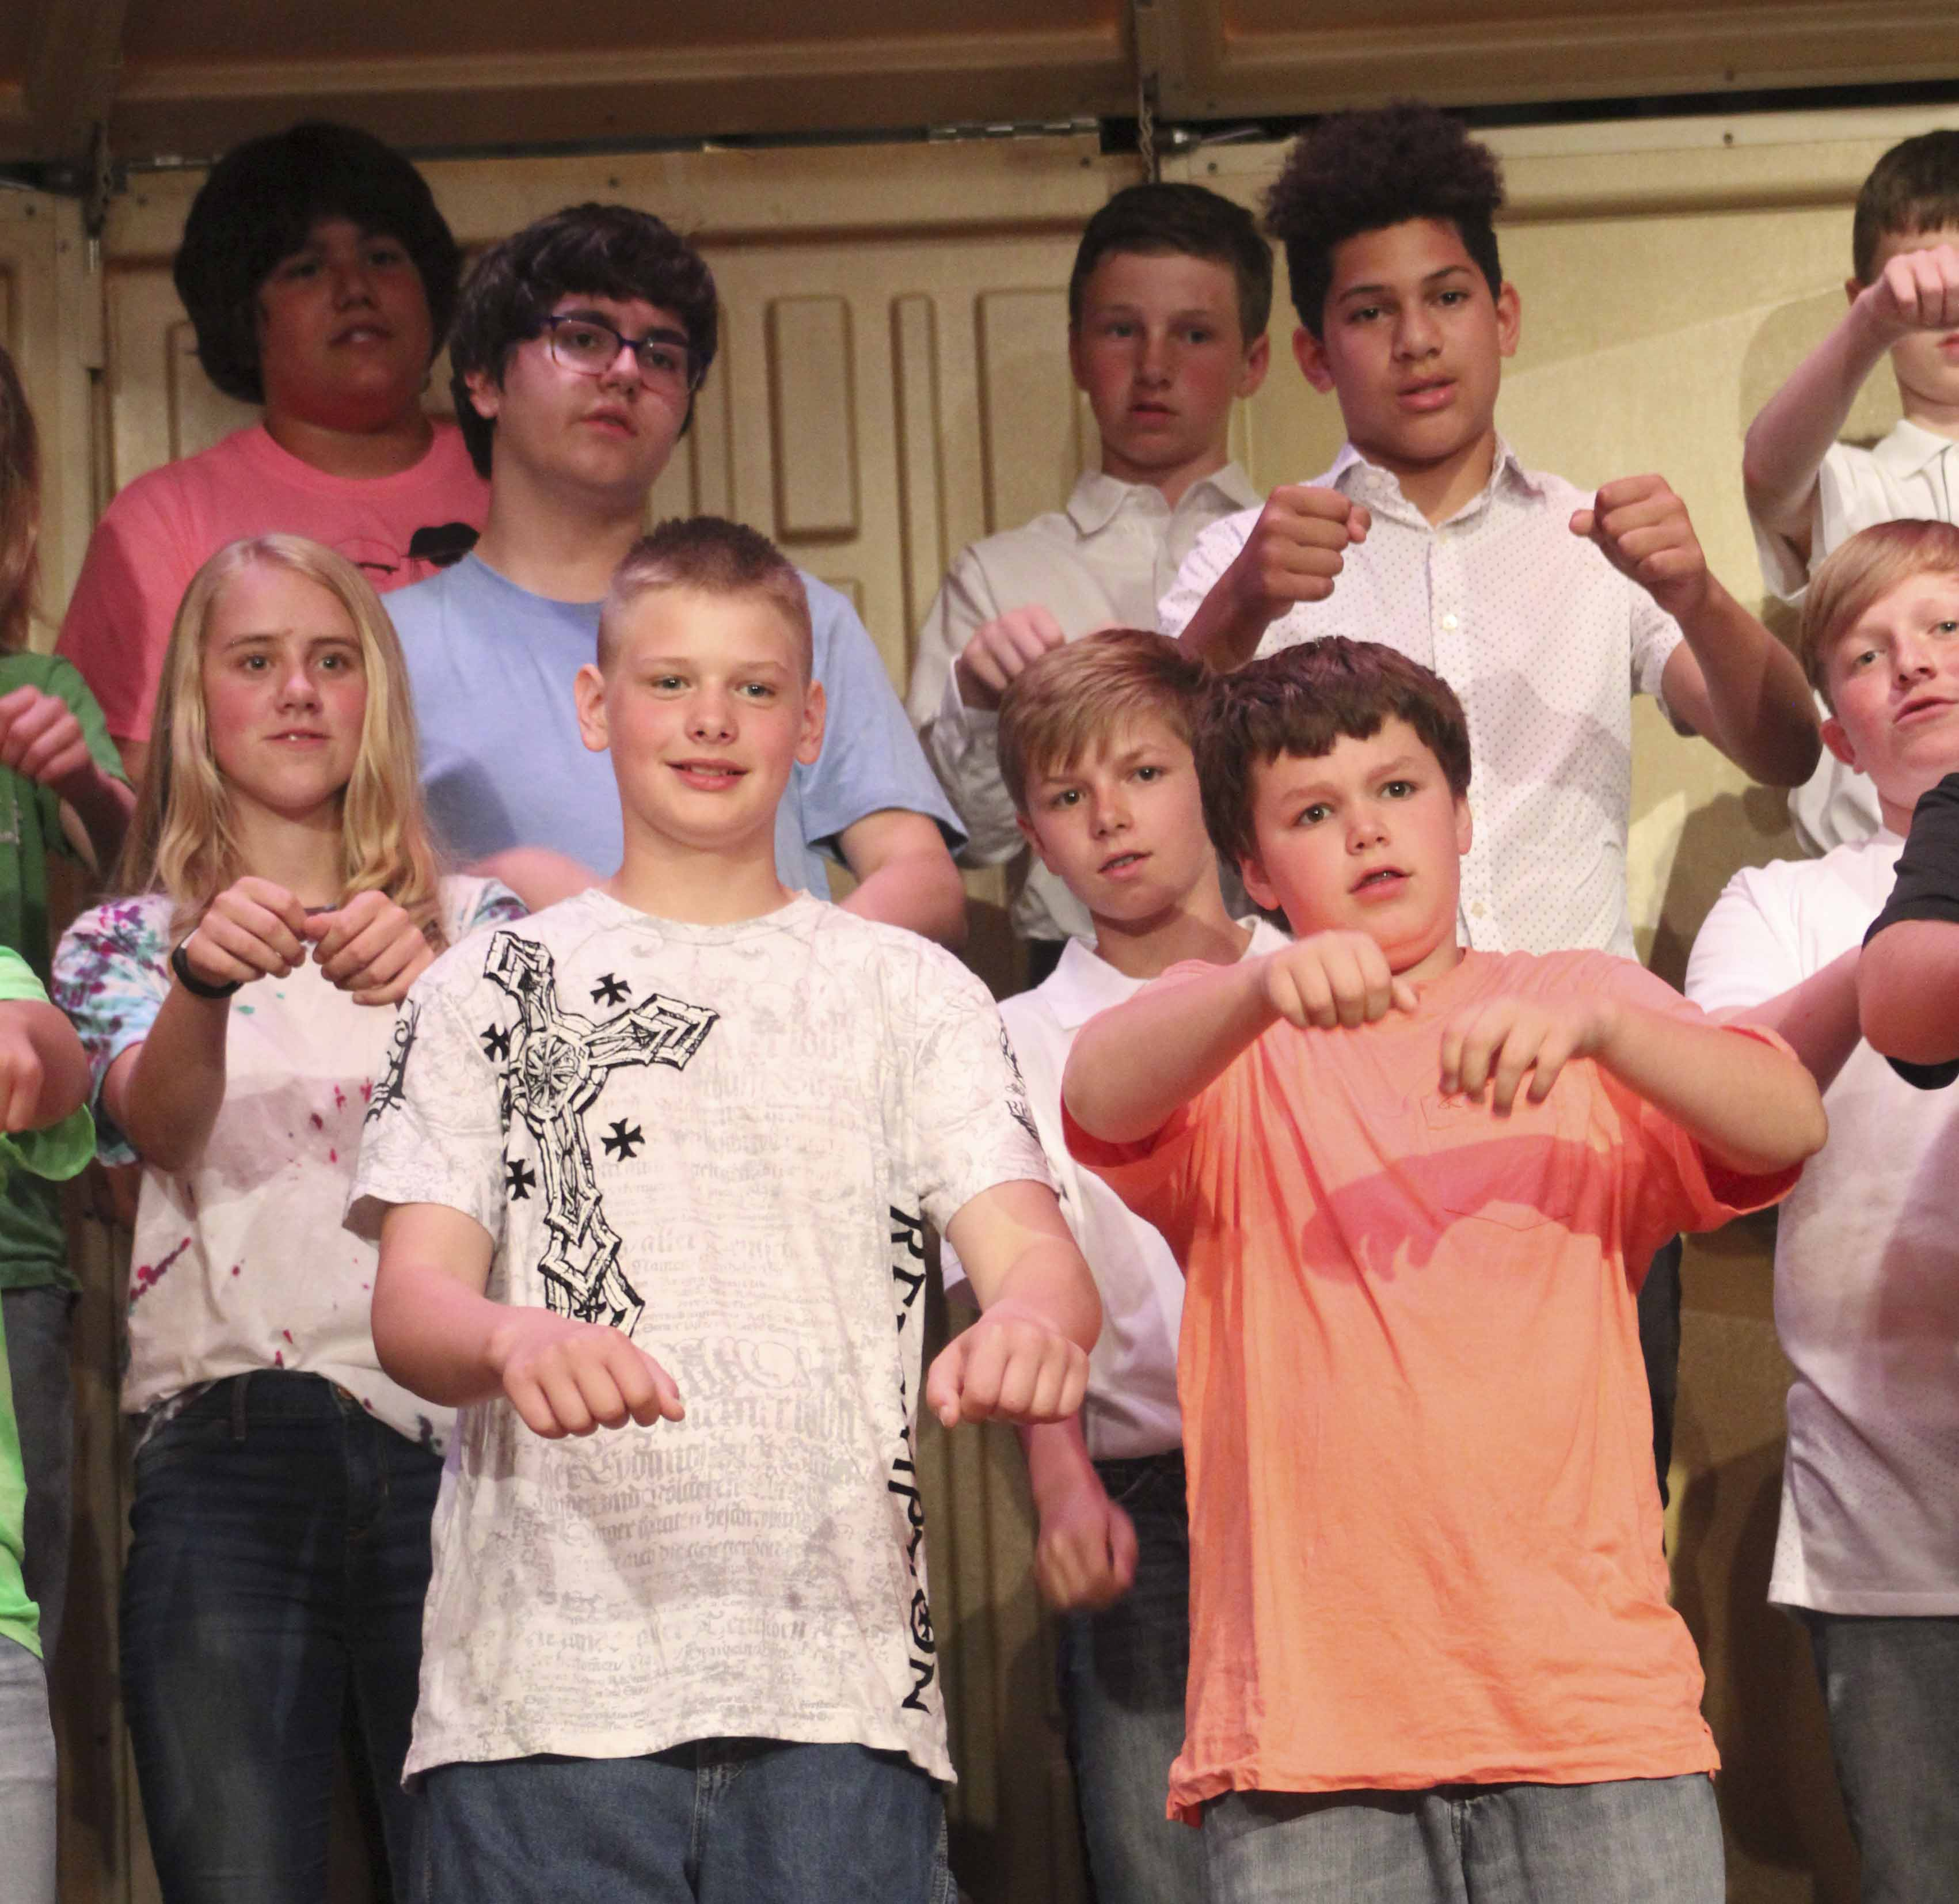 """A Cinematic Celebration"" was the theme of the grade 7-8 vocal concert May 21 in the Monticello Middle School Auditorium. Performers included, first row from left: Trey Brady and Zach Reuter. Second row: Serena Brokaw and Chesney Capron. Third row: Brodie Clemmons and Caelum Jones. Fourth row: Ian Taylor and Ian Temple. (Photos by Pete Temple)"